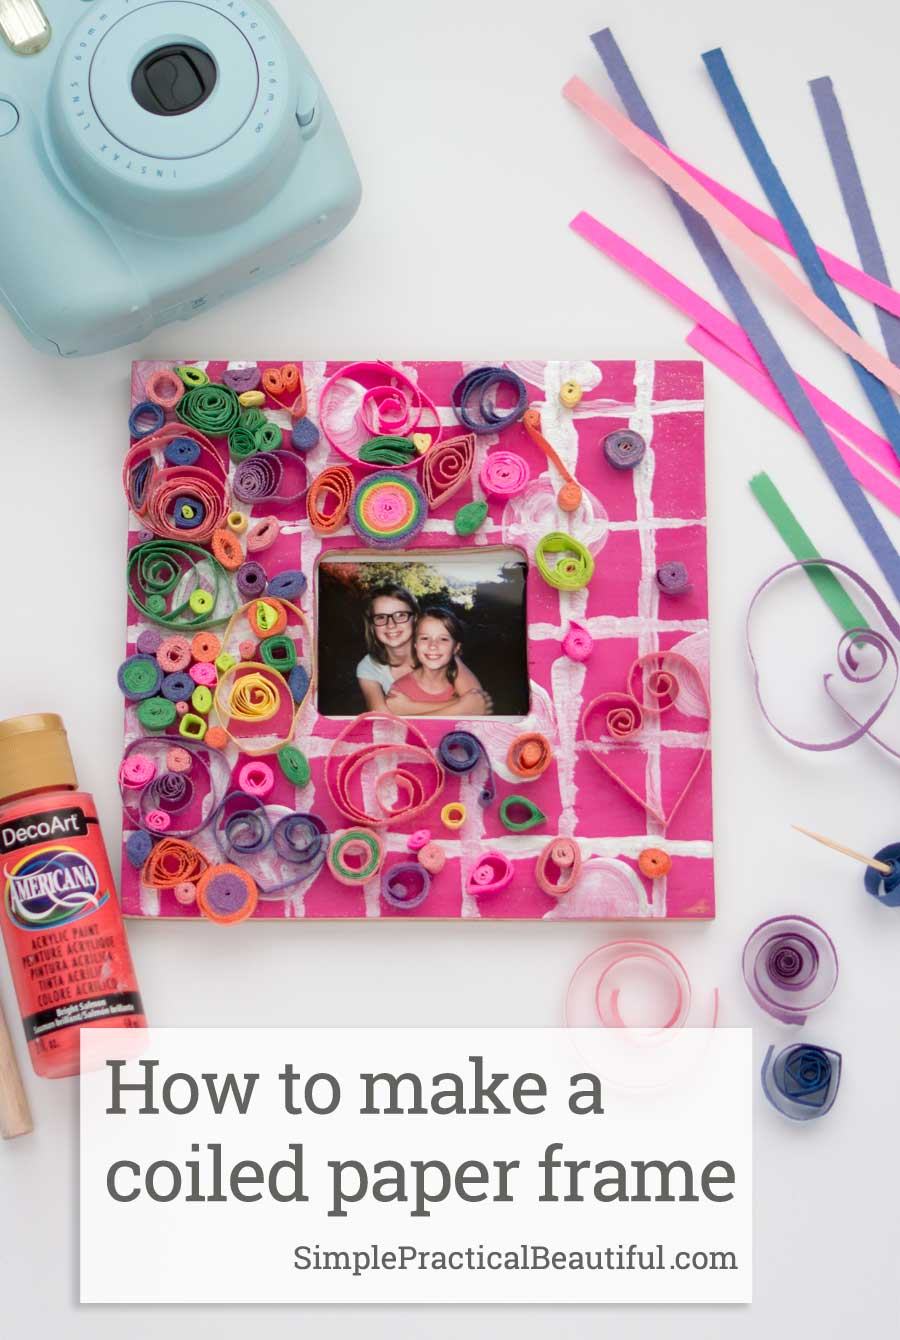 How to make a curled paper frame with coiled paper to make quilling designs perfect for a DIY Instax photo frame